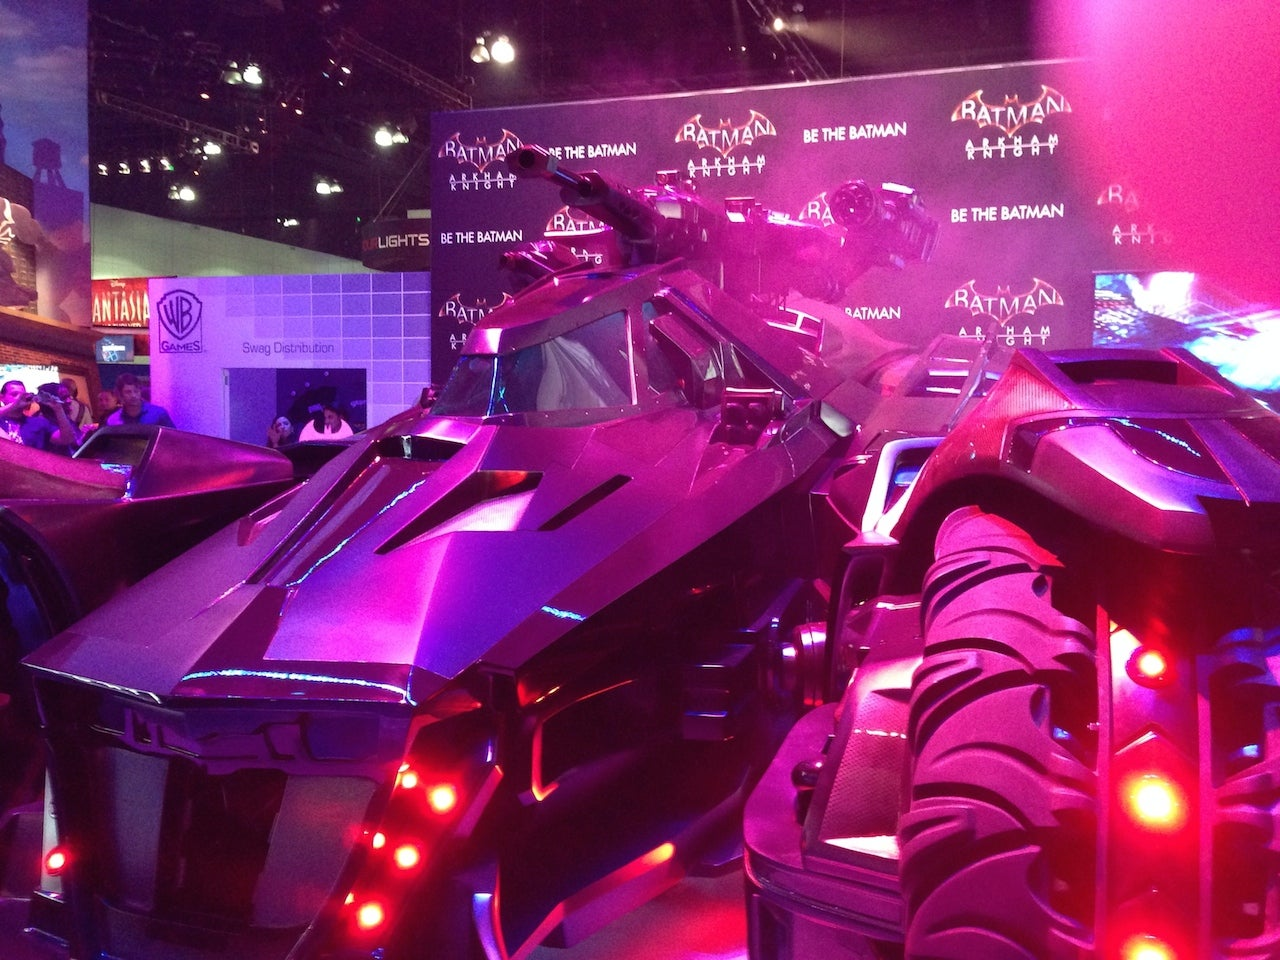 They Brought A Batmobile To E3